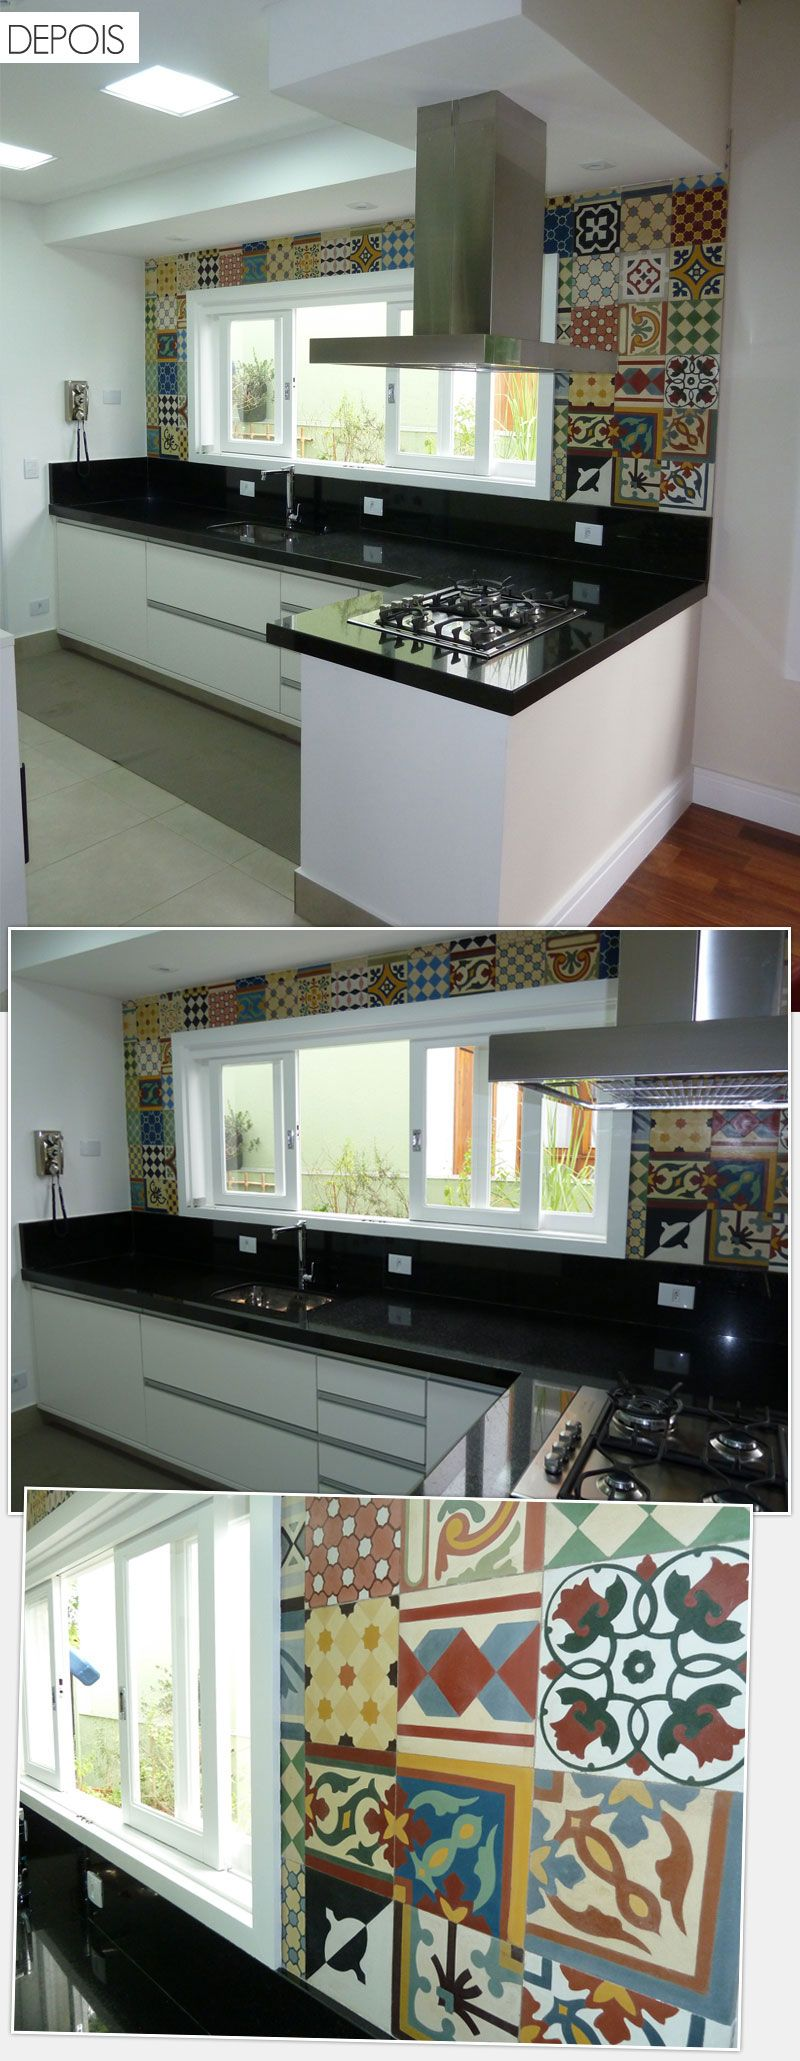 Patchwork Tiles This Could Look Really Nice Beautiful Kitchens